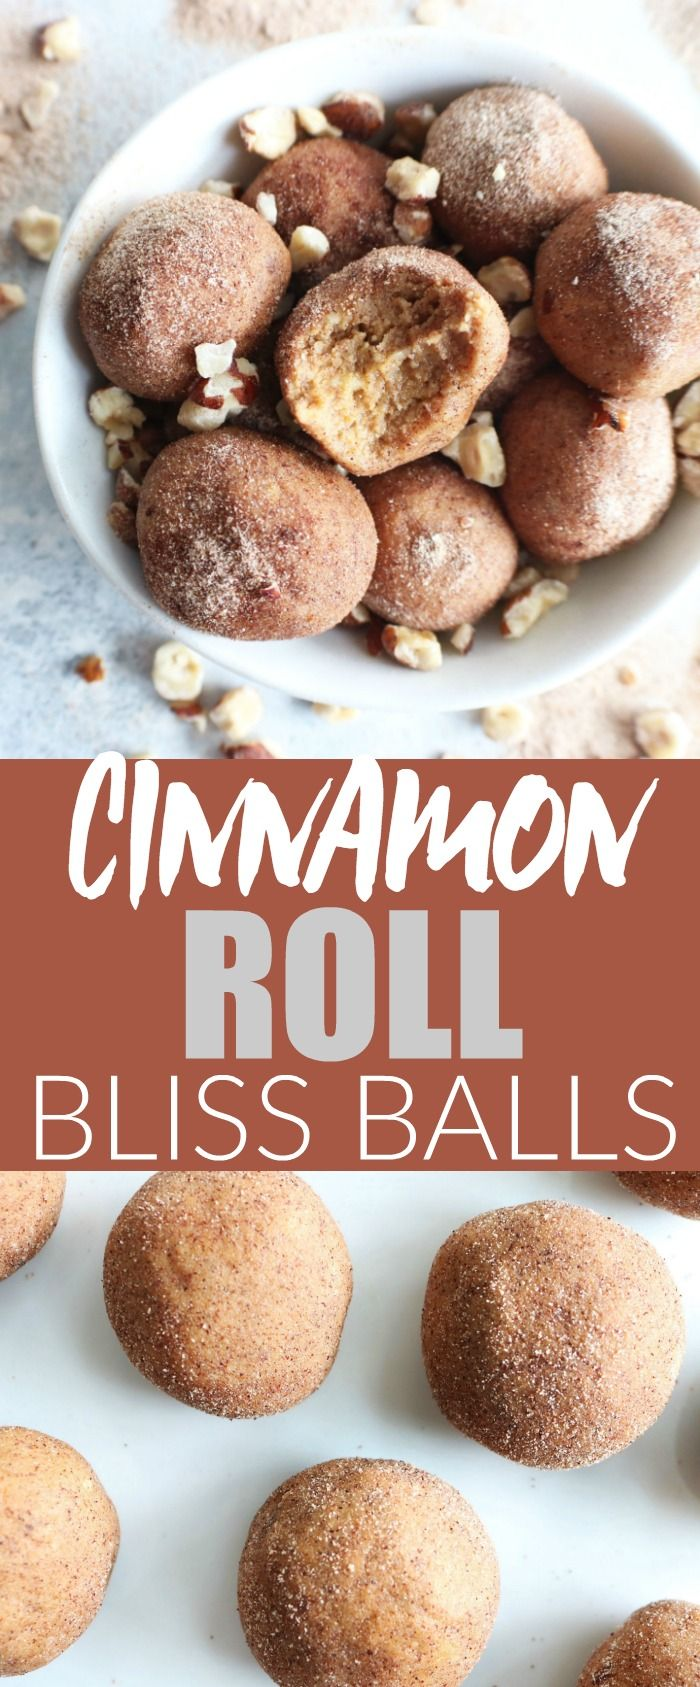 These low carb, gluten free, and vegan cinnamon roll bliss balls are perfect snack or sweet treat! They're packed with protein and healthy fats that will energize you and keep you full!